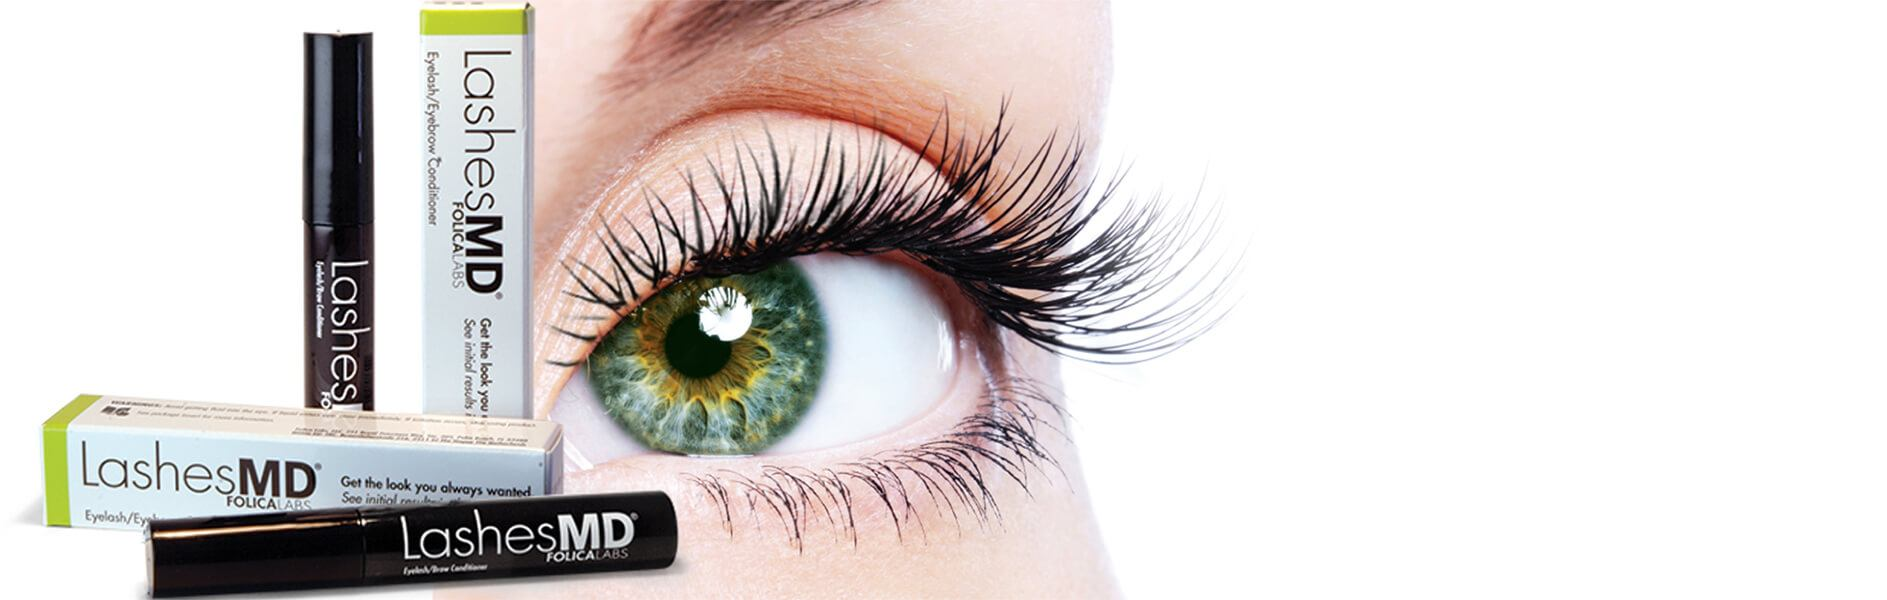 null - Professional-grade eyelash enhancer available without a prescription.